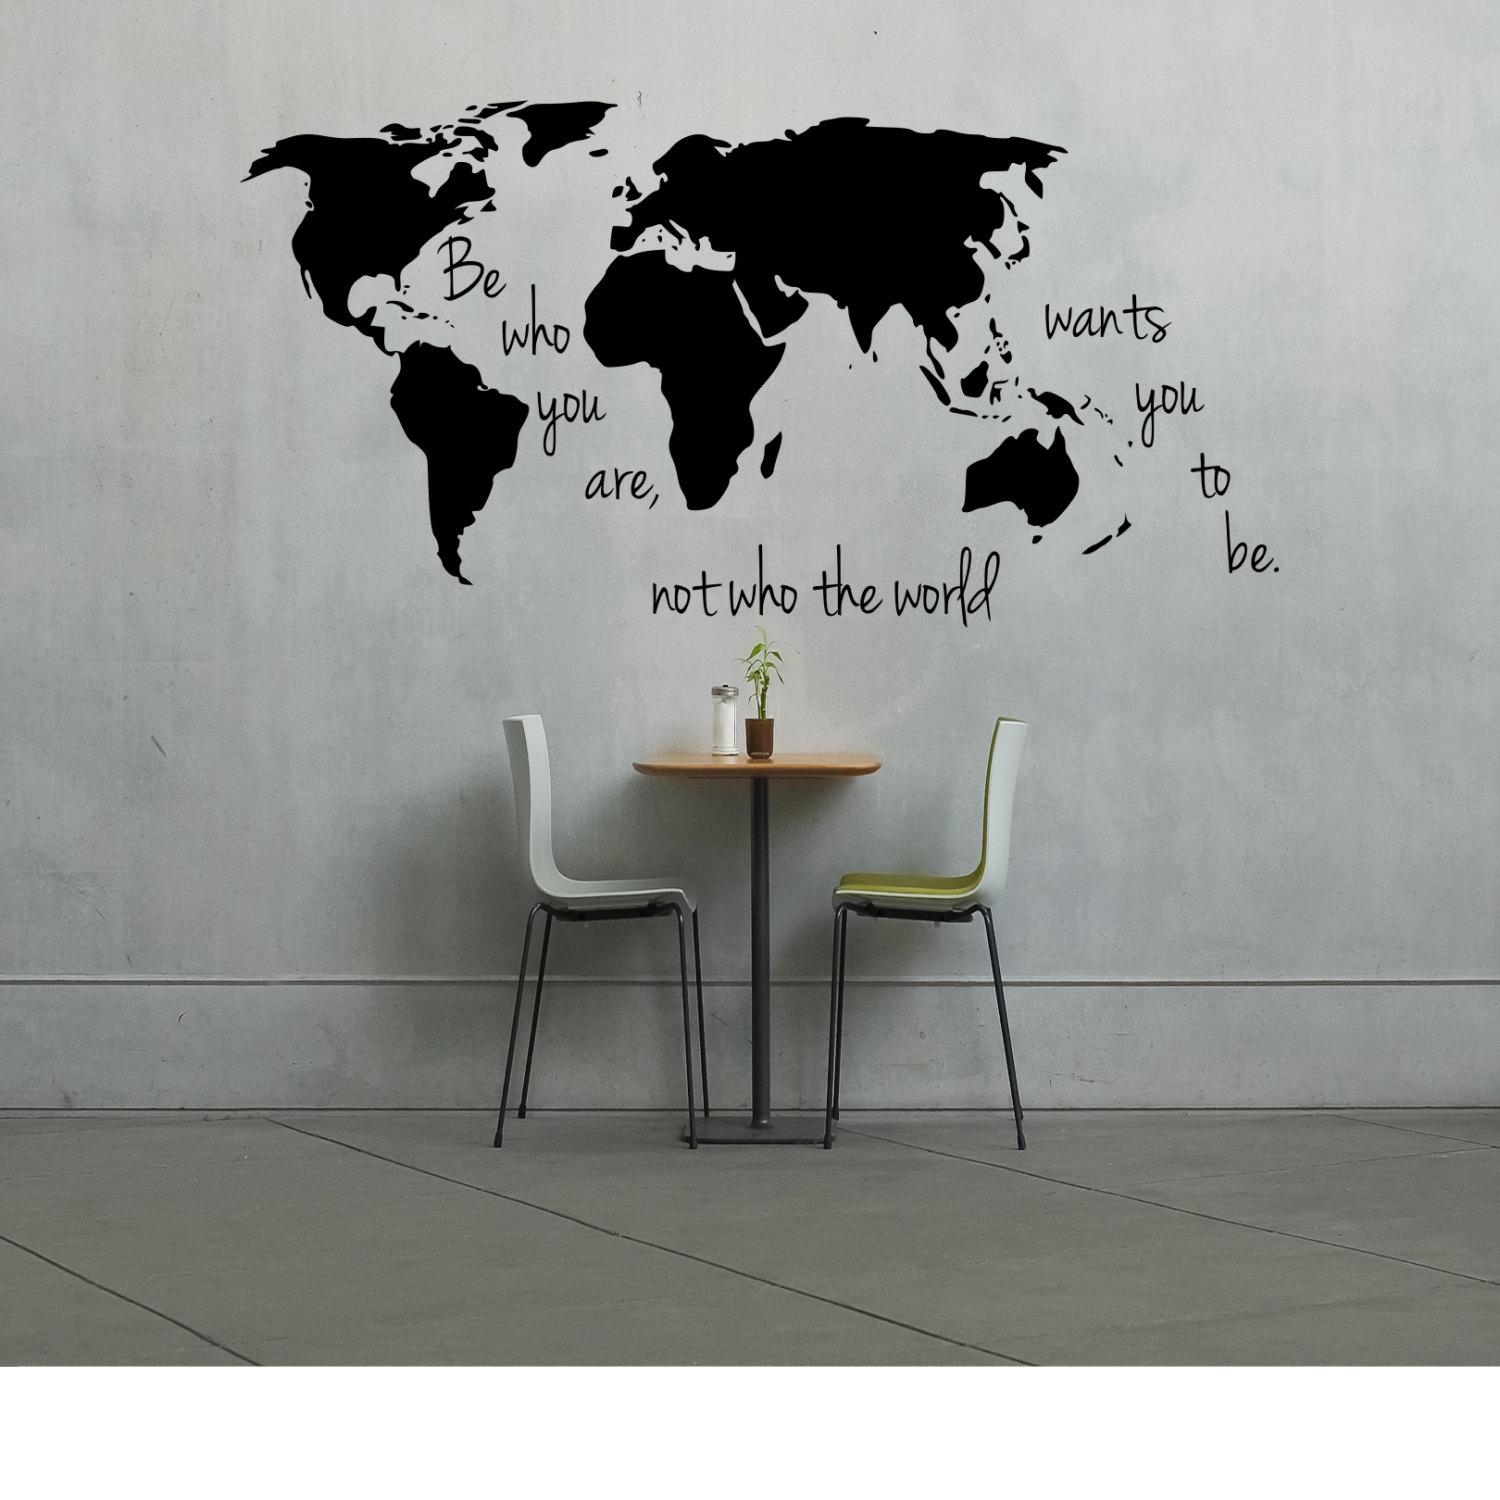 Large World Map Decal Be Who You Are Not Who The World Wants Pertaining To World Wall Art (Image 12 of 20)